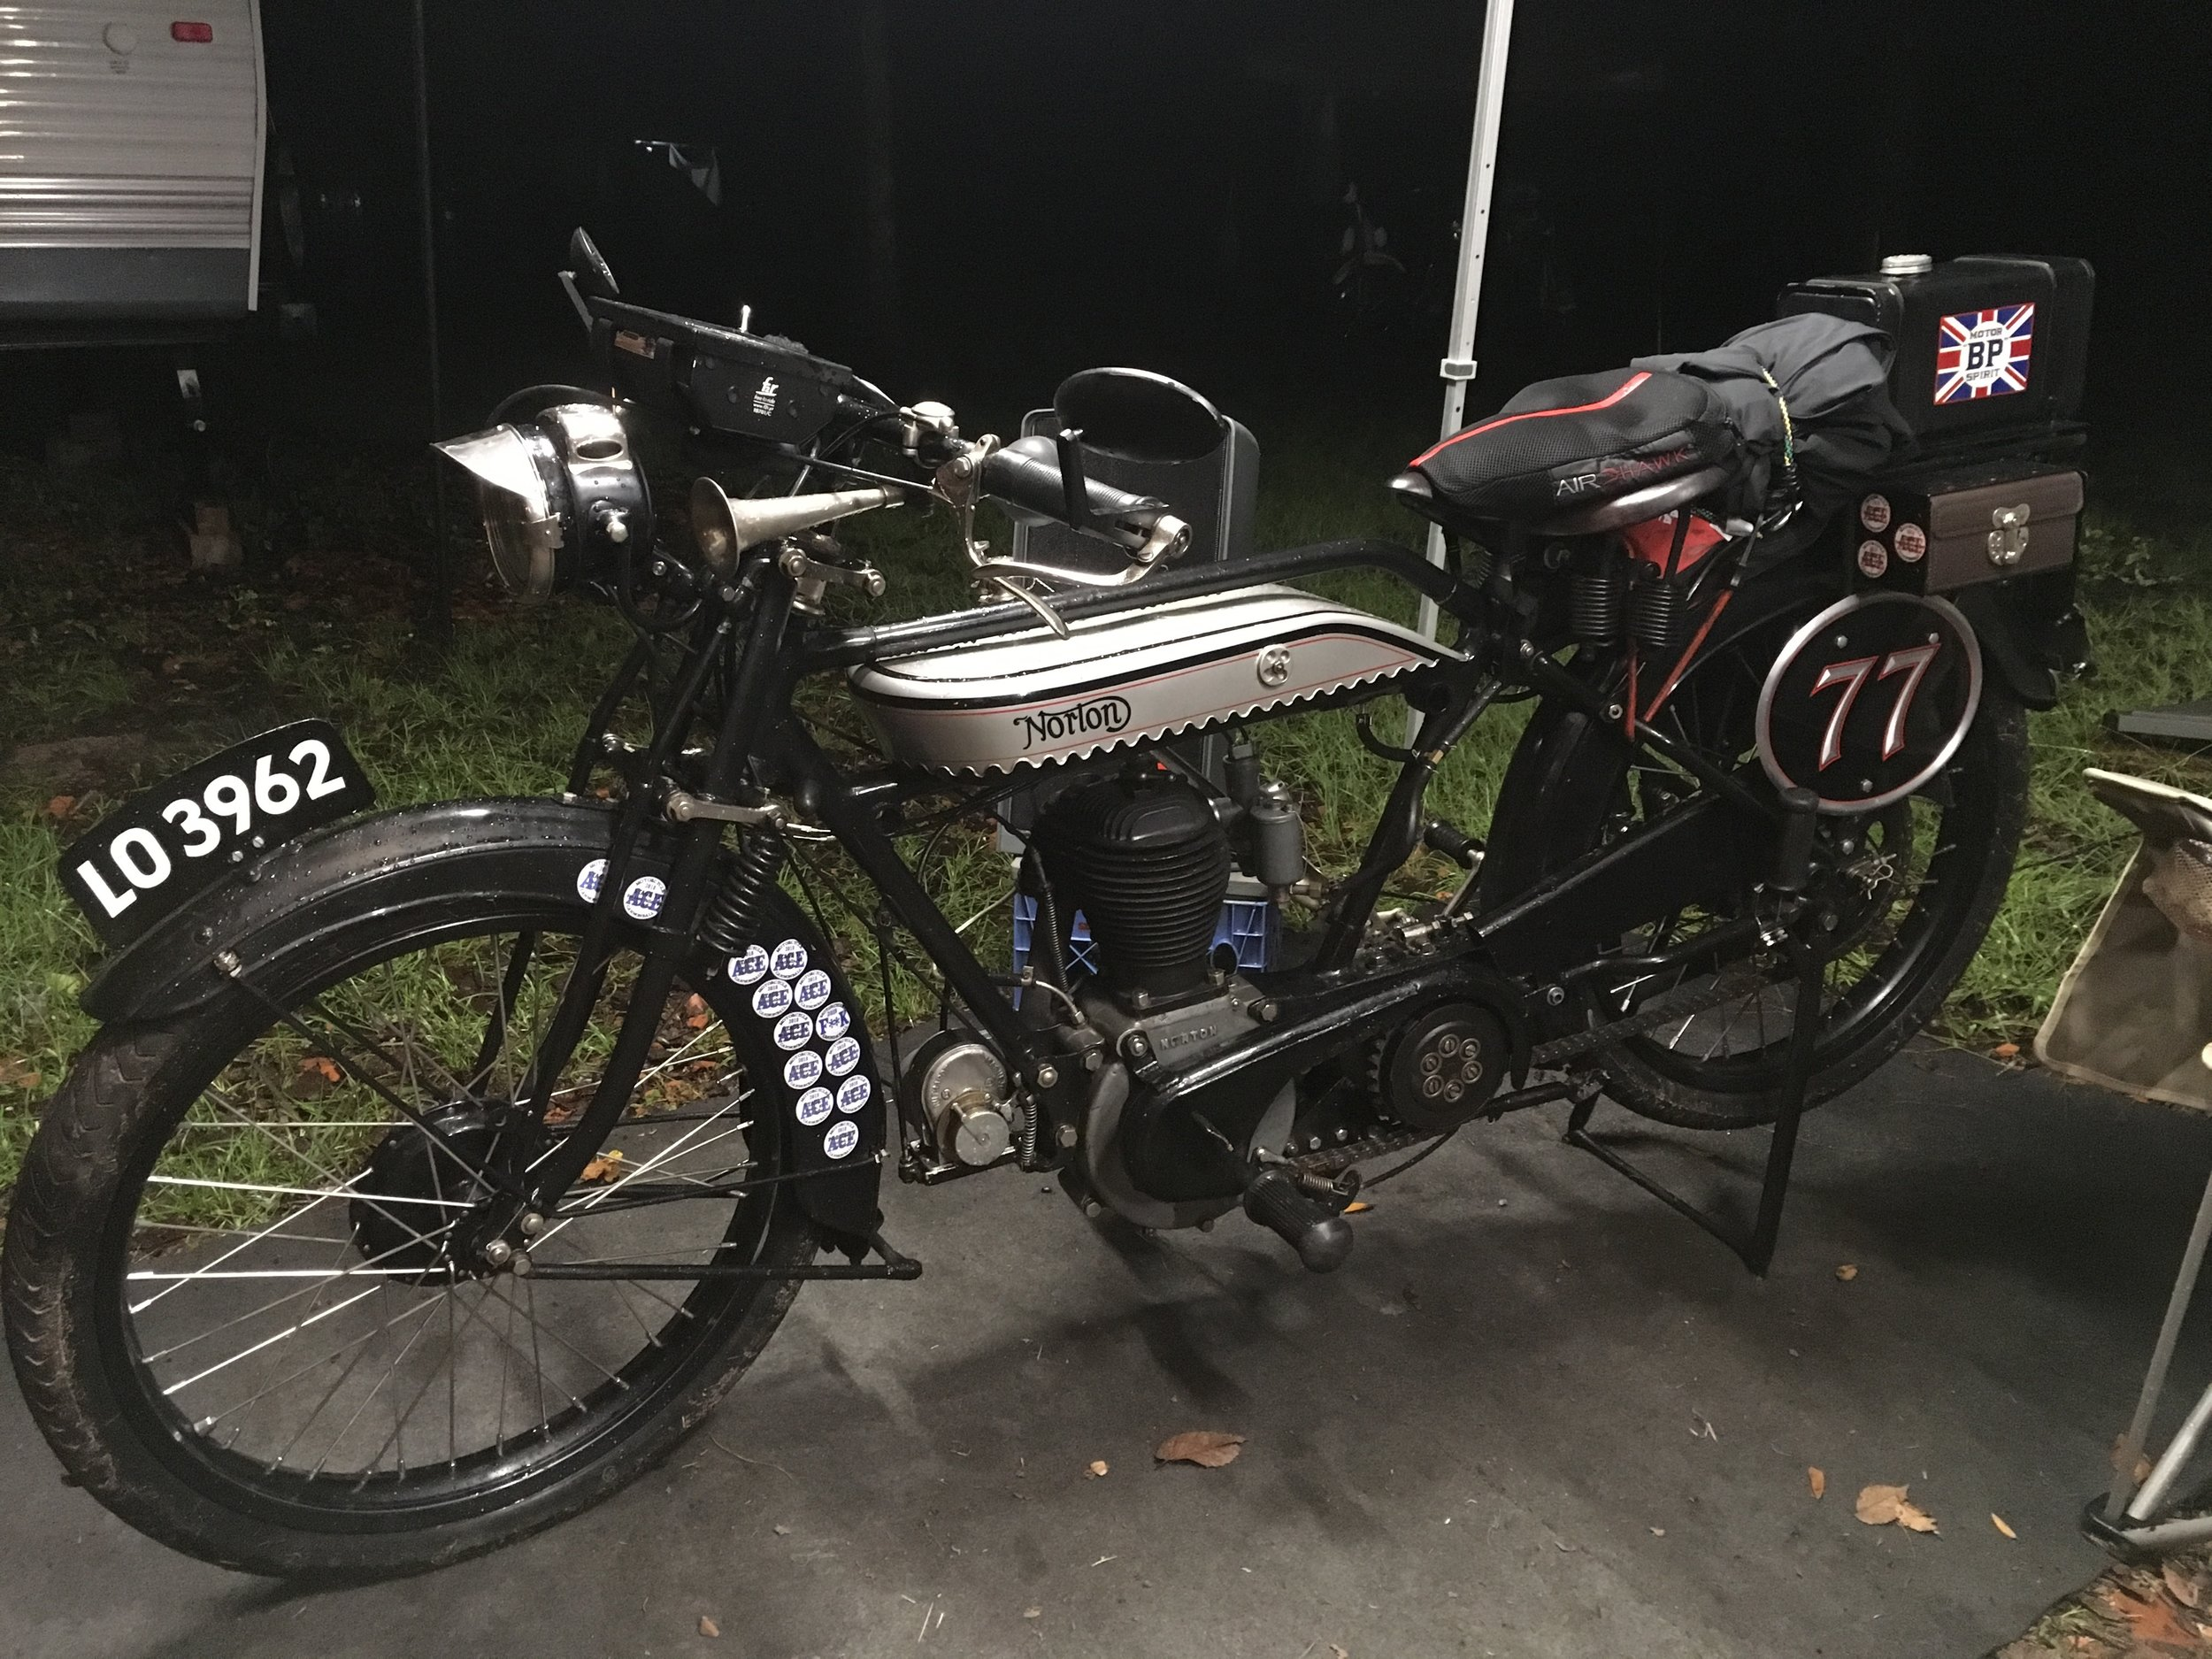 One of the crown jewels of the meet was this beautiful pre-war Norton thumper, just back from once again completing the Portland Maine to Portland Oregon Cannonball race. Just out of the frame are two more near-identical bikes from Peckerhead Racing finishing the Cannonball without missing a segment!